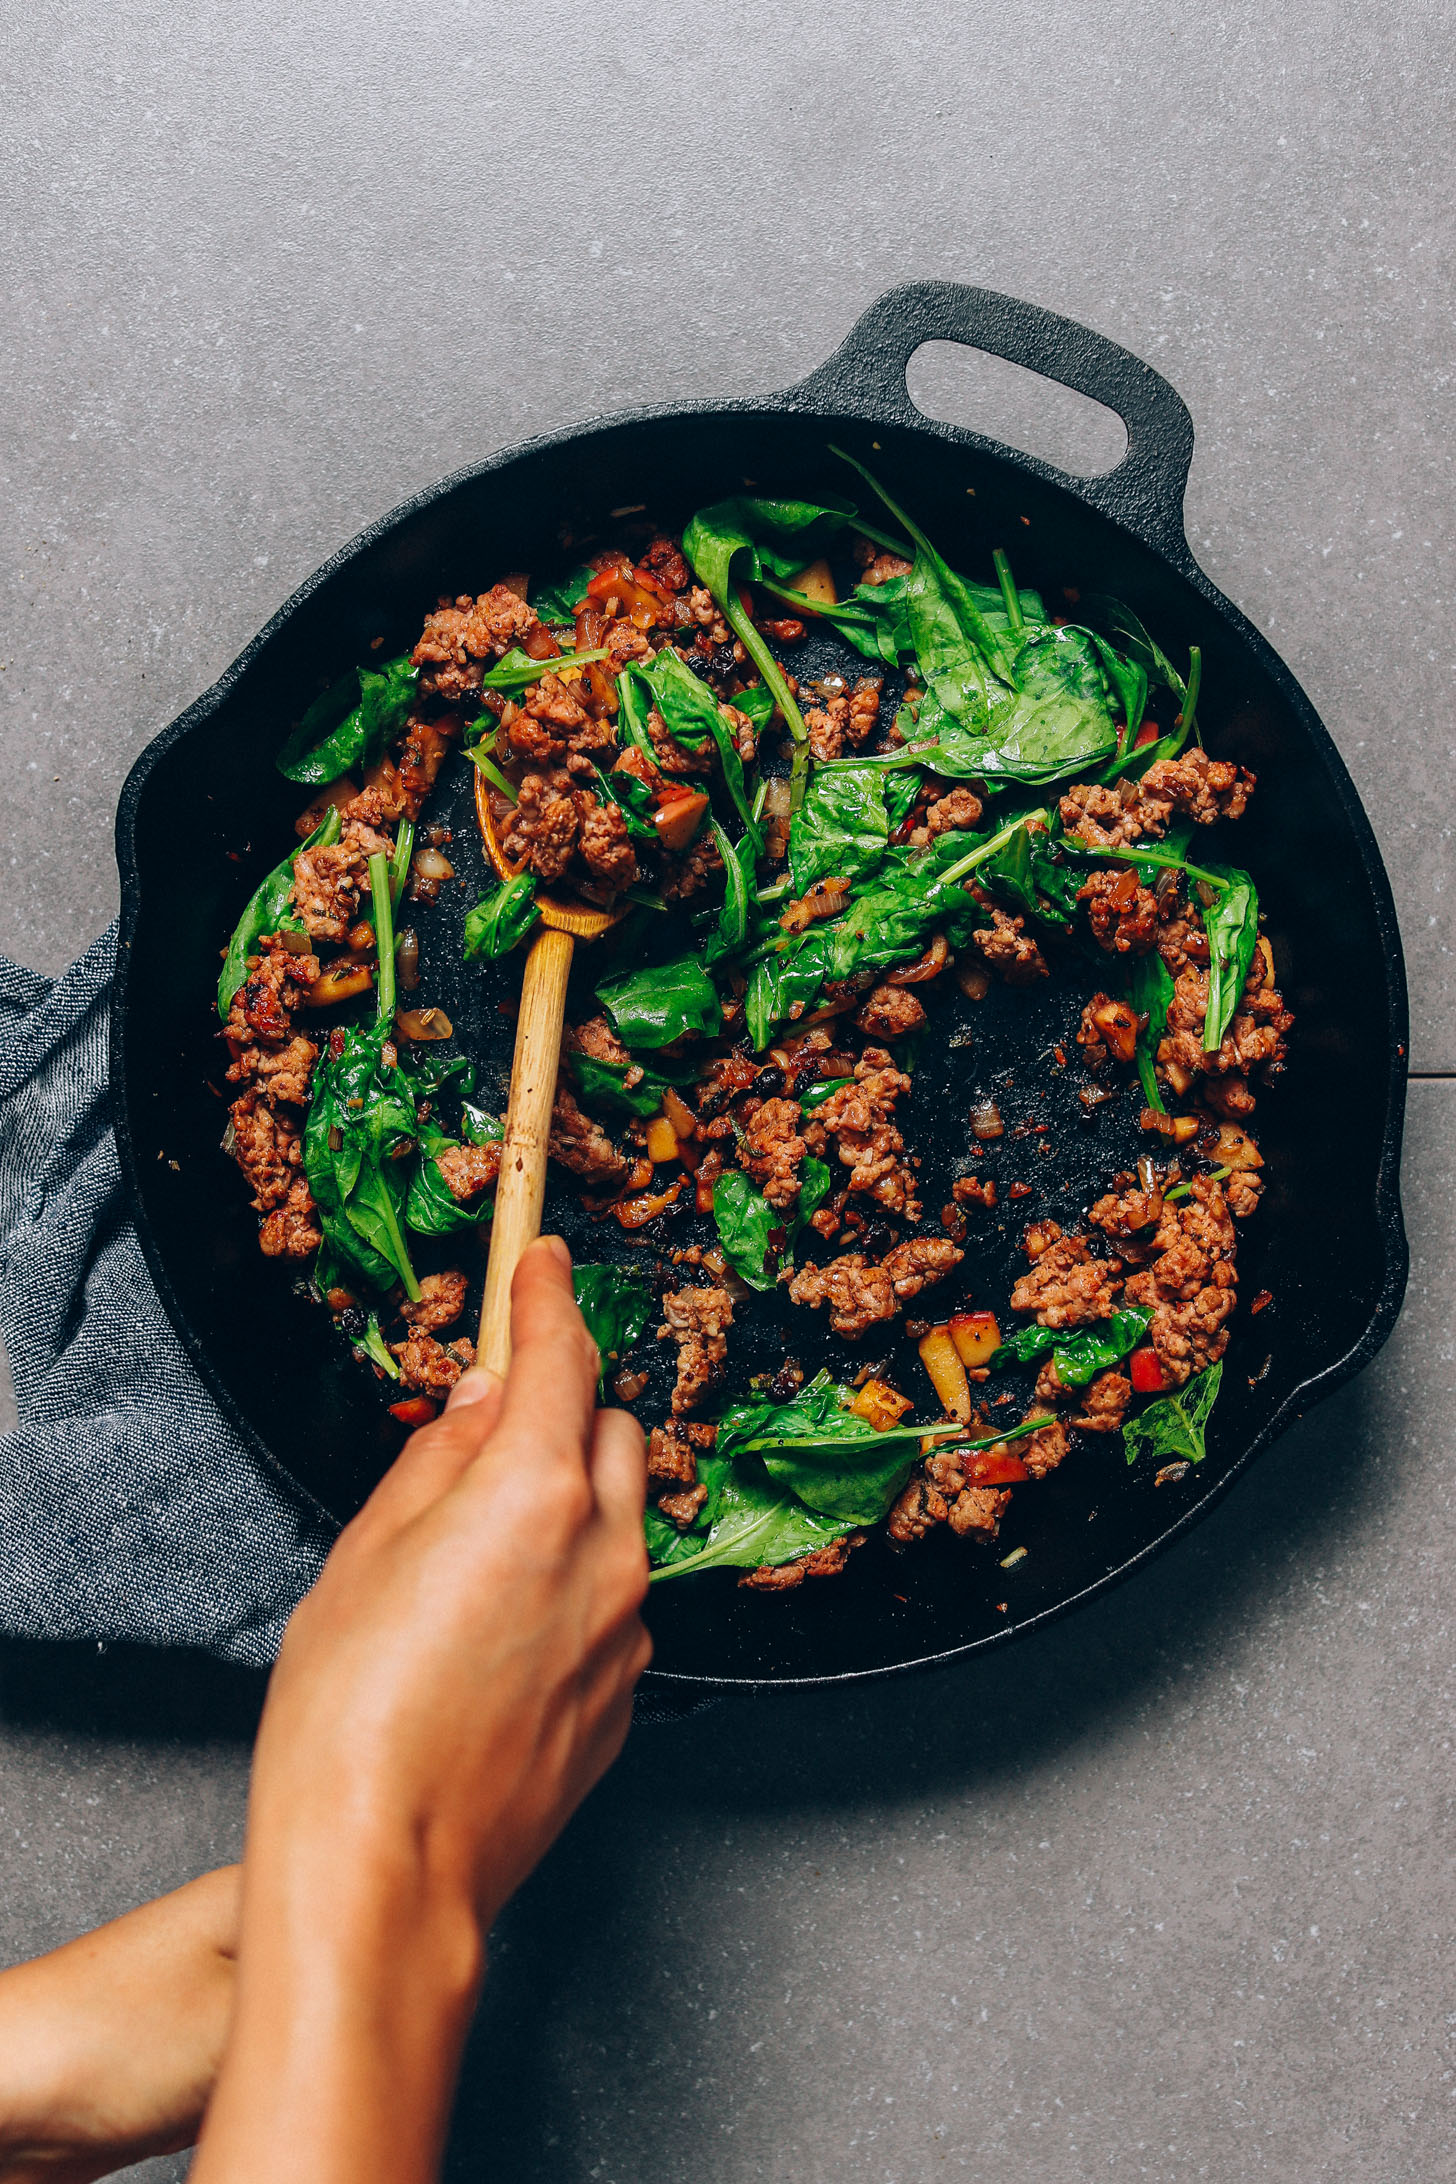 Sautéing spinach and sausage in a large skillet for our Fall Sweet Potato Breakfast Hash recipe